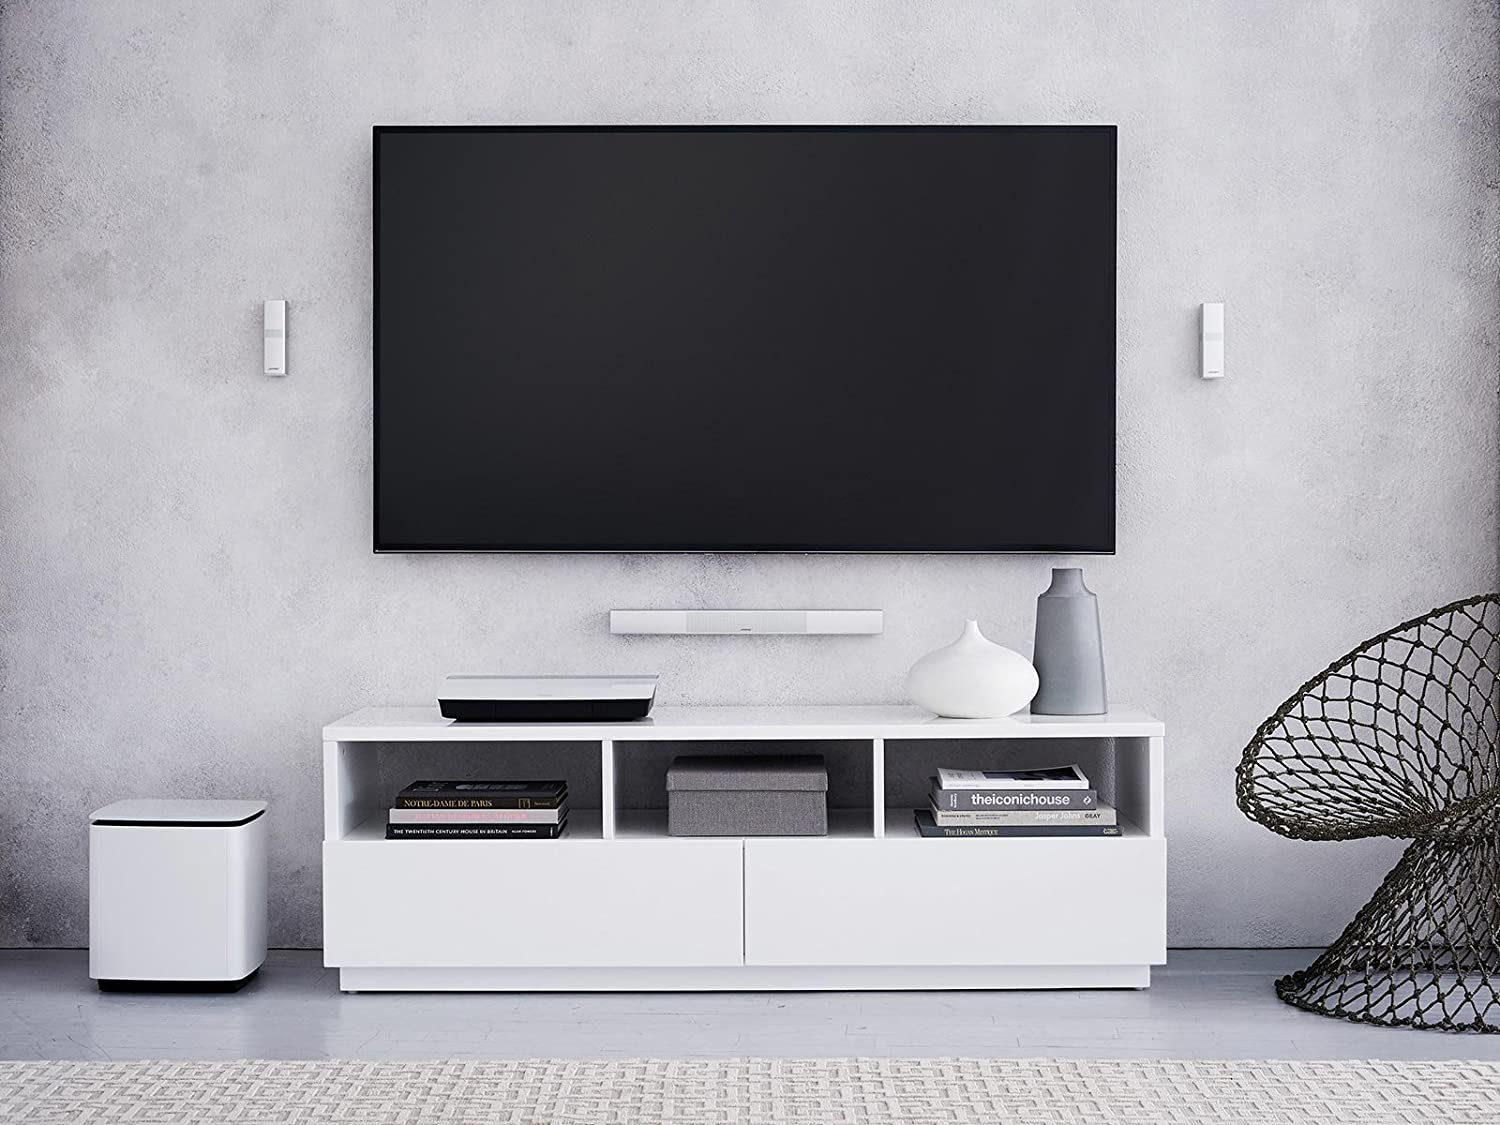 Additional Acoustimass 300 Wireless Bass Module White Bose LifeStyle 650 Home Entertainment System